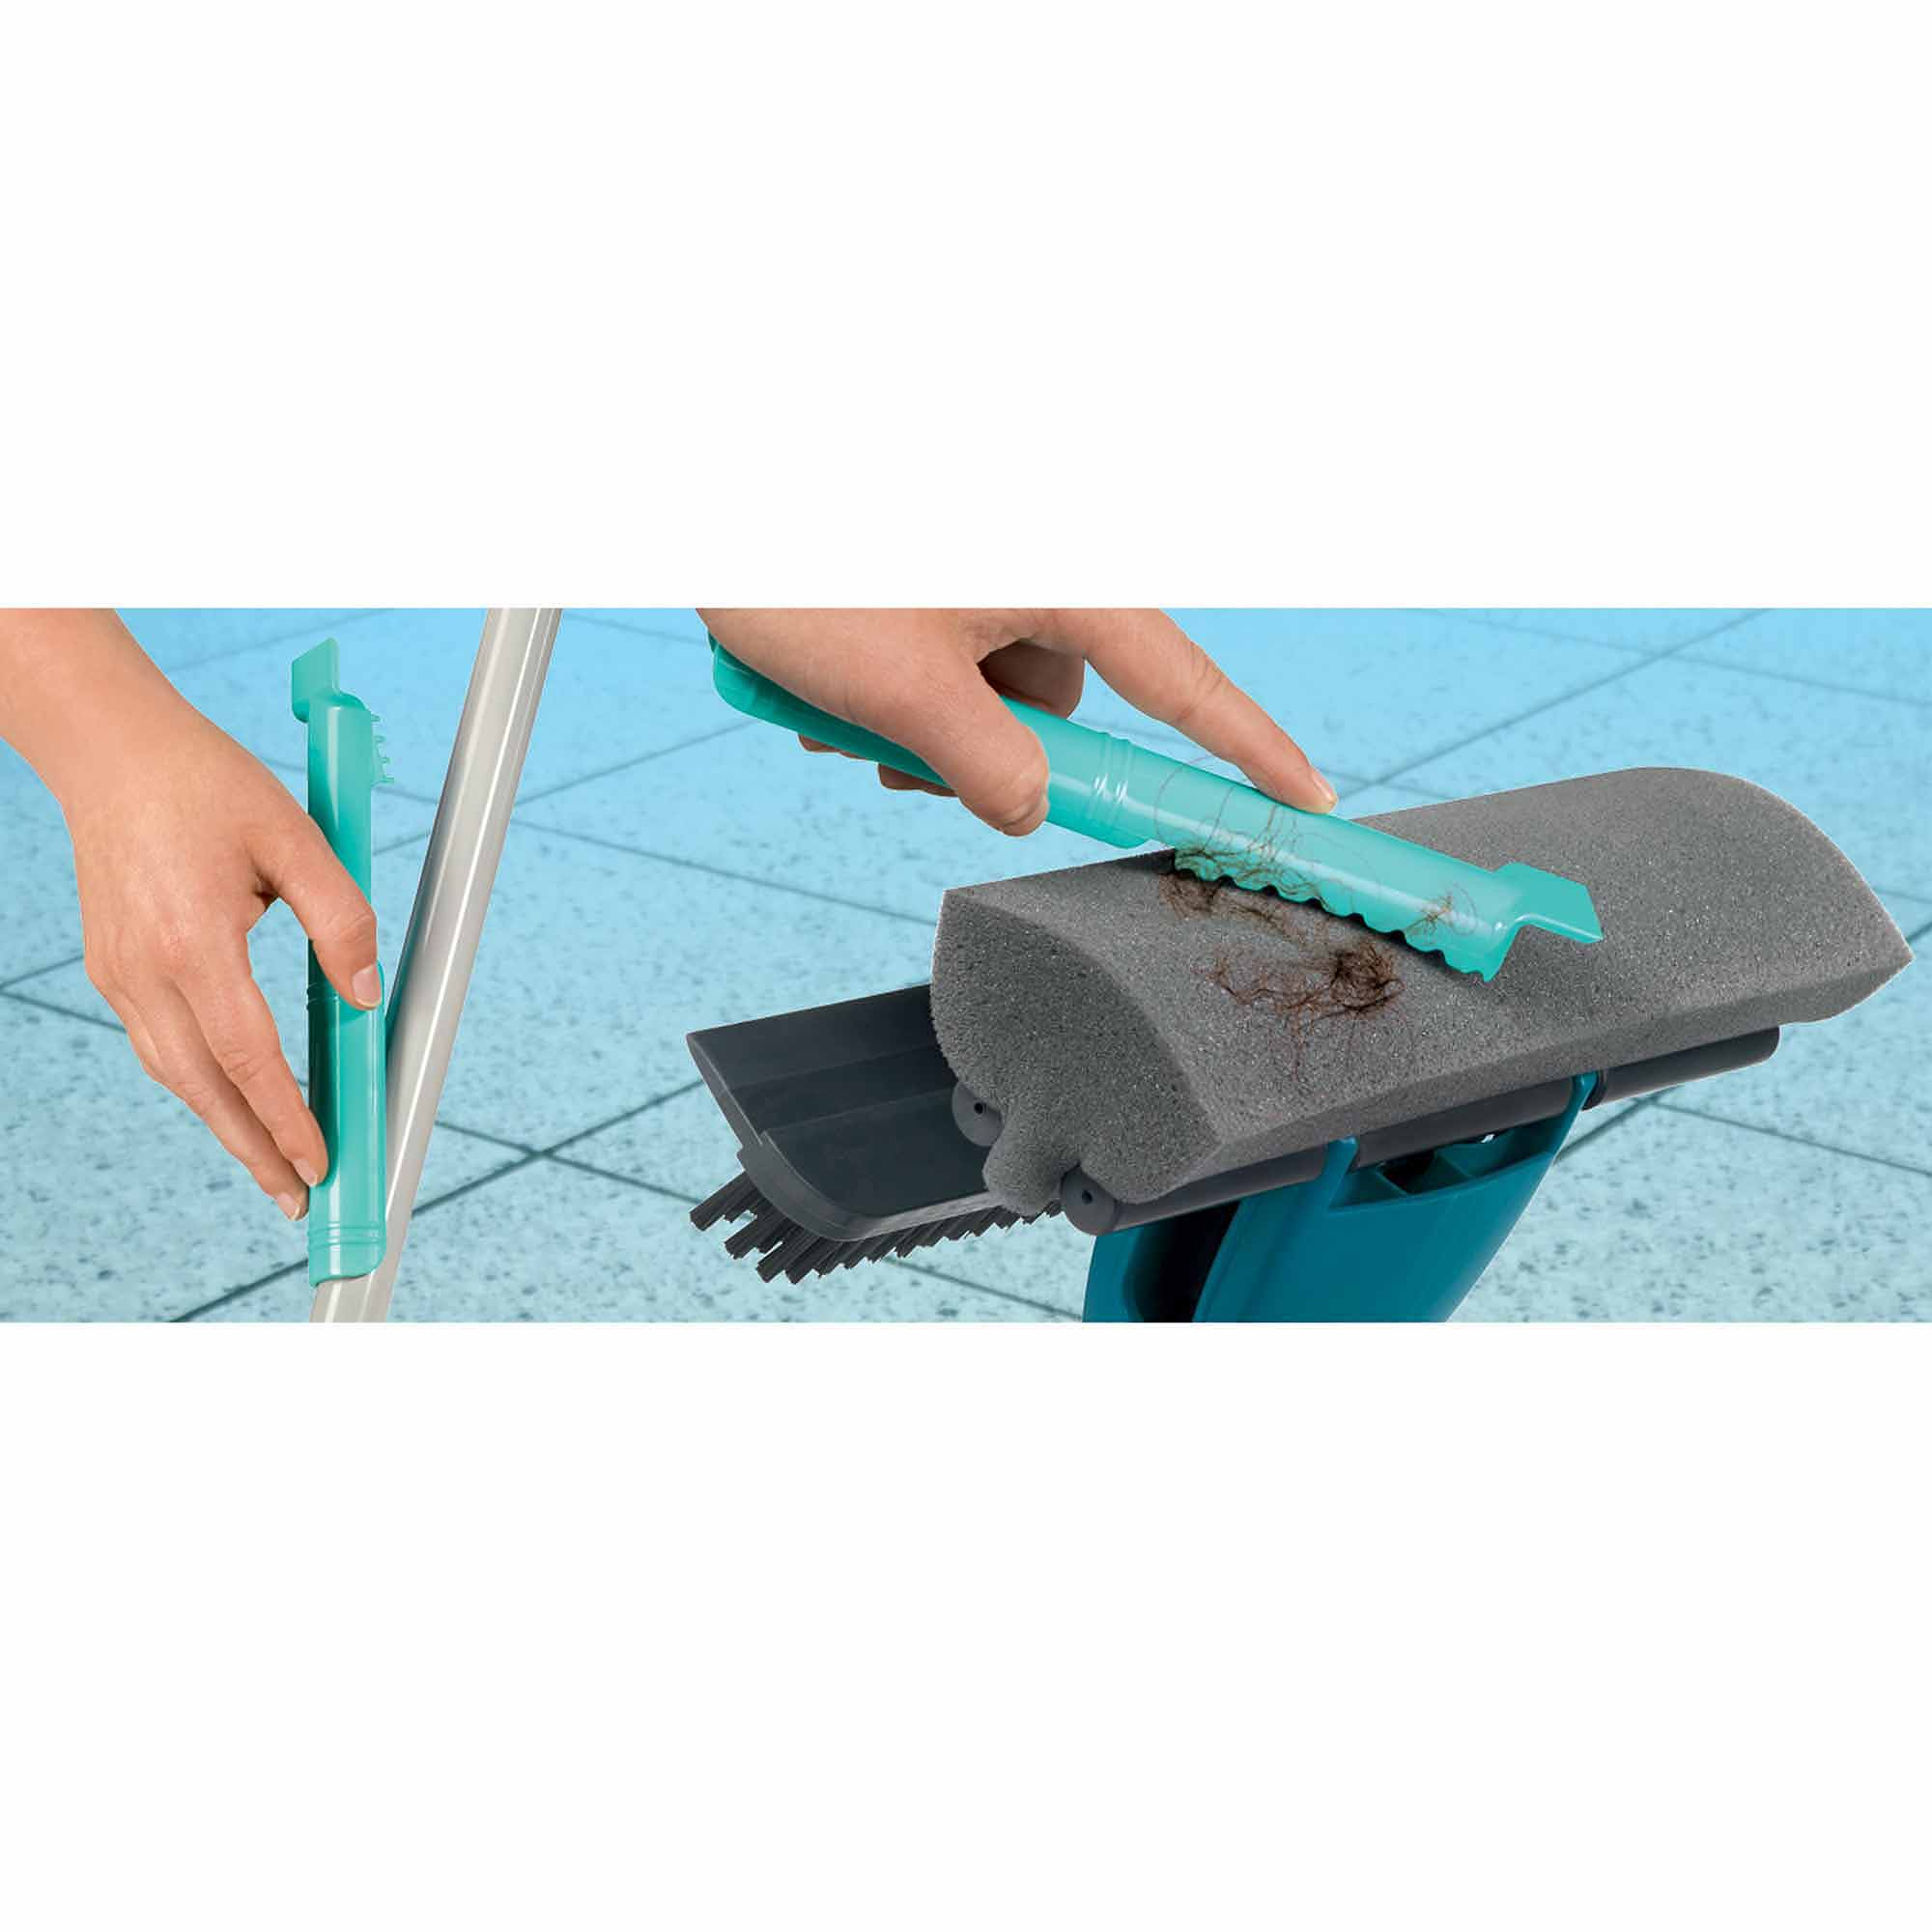 Leifheit 3-in-1 Indoor/Outdoor Floor Scrubber with Rubber Brush, Sponge Mop and Squeegee, Turquoise and Black